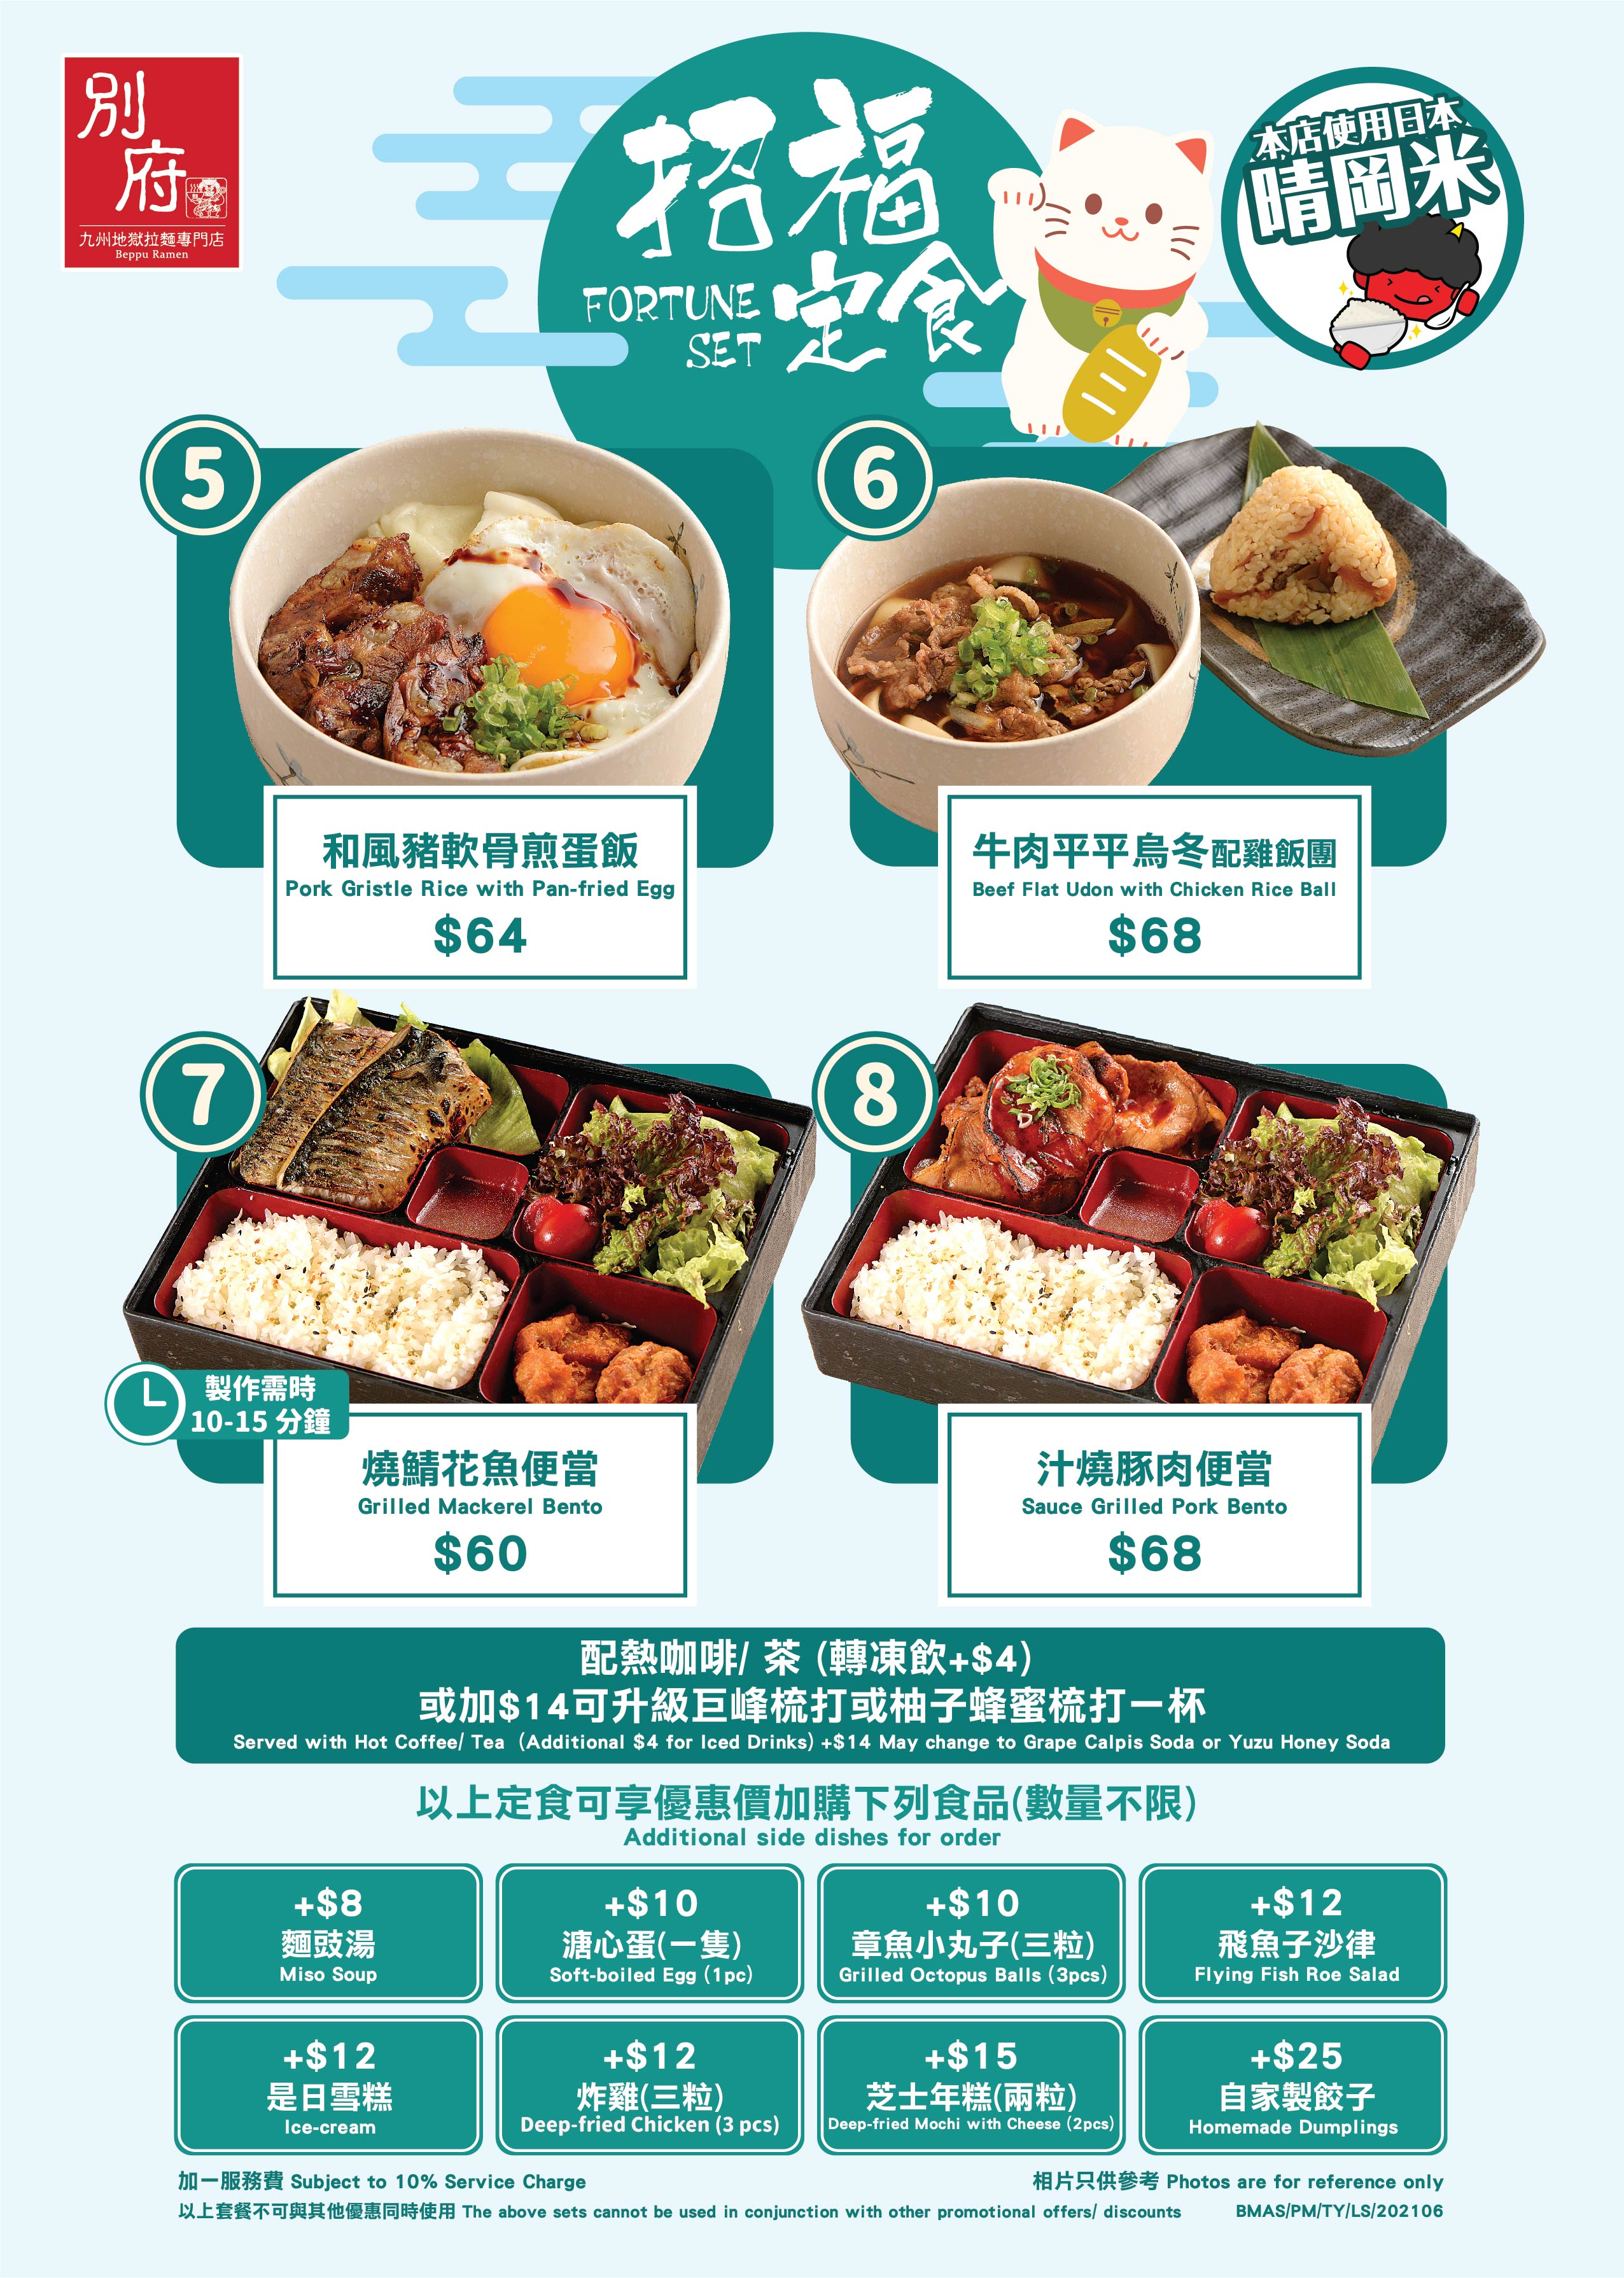 BM_招福_Lunch Special_202106_AS_PM_TY_2